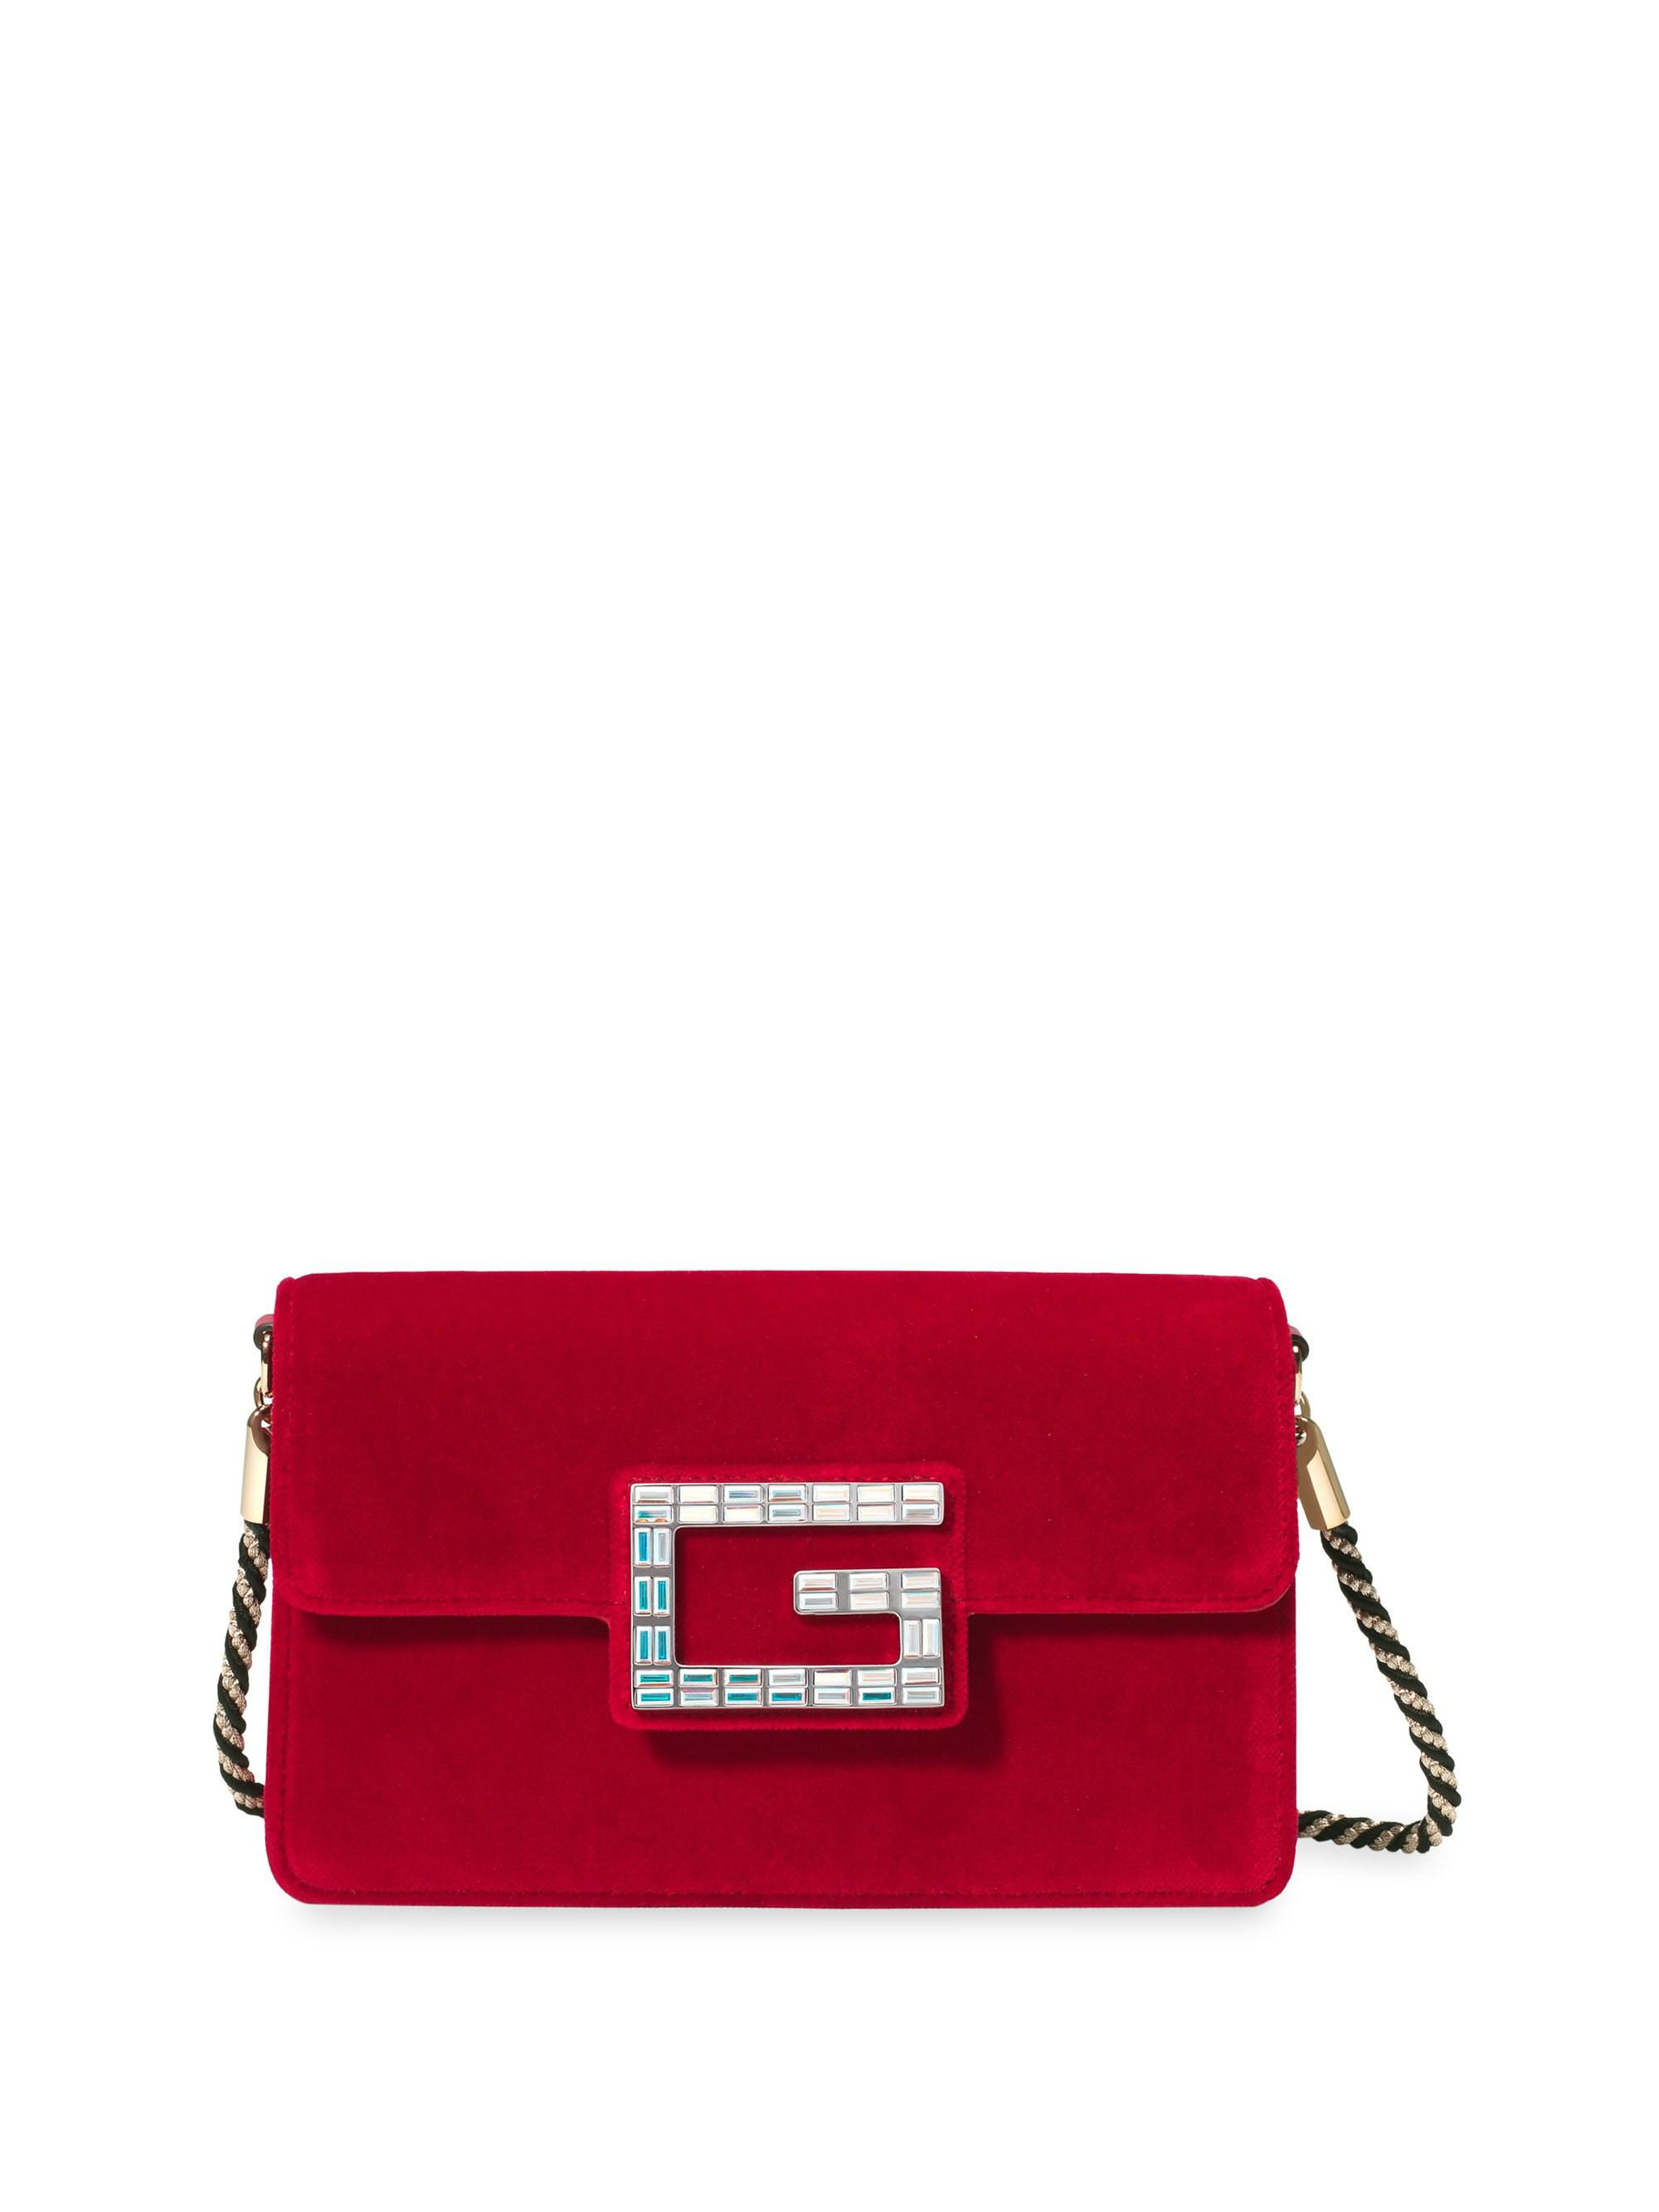 529a7cdfc5e8 Lyst - Gucci Broadway Small Shoulder Bag in Red